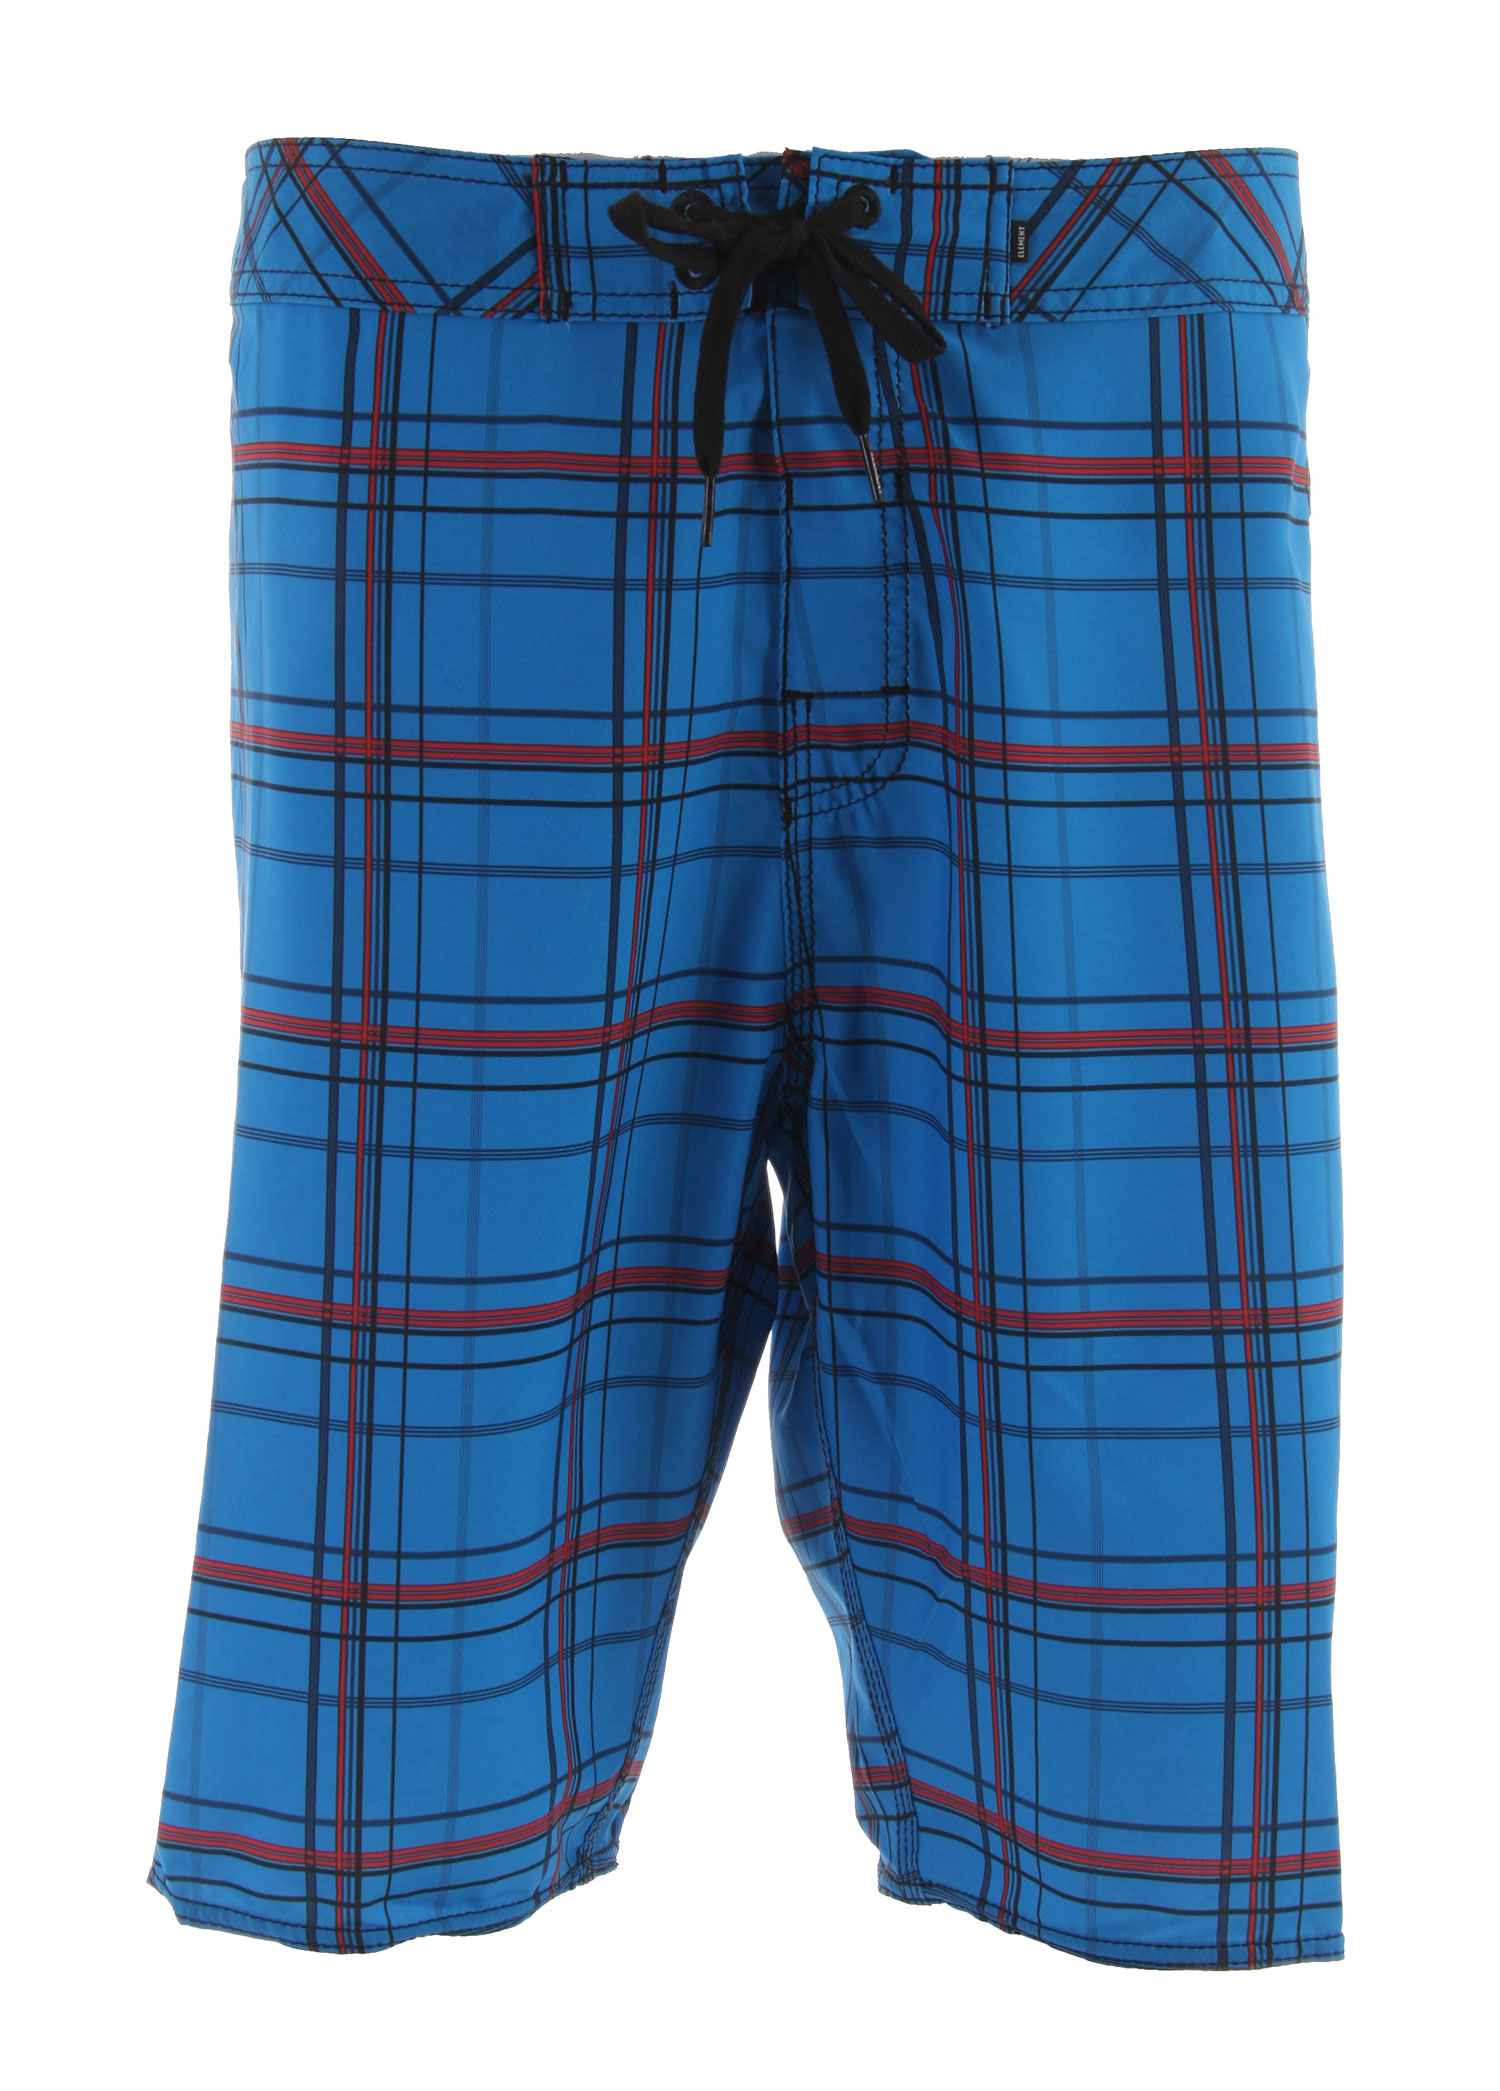 Surf These Plaid Boardshorts are made with a quick drying polyester that also stretches. This will help keep you comfortable all day and the quick dry material will cut down on dry time. Leaving you more time to do what you like to do.Key Features of the Element Ready Aim Plaid Boardshorts Rasta: Fabric: 100% recycled polyester with mechanical flex lightweight, quick-dry Outseam: 22 in - $31.95